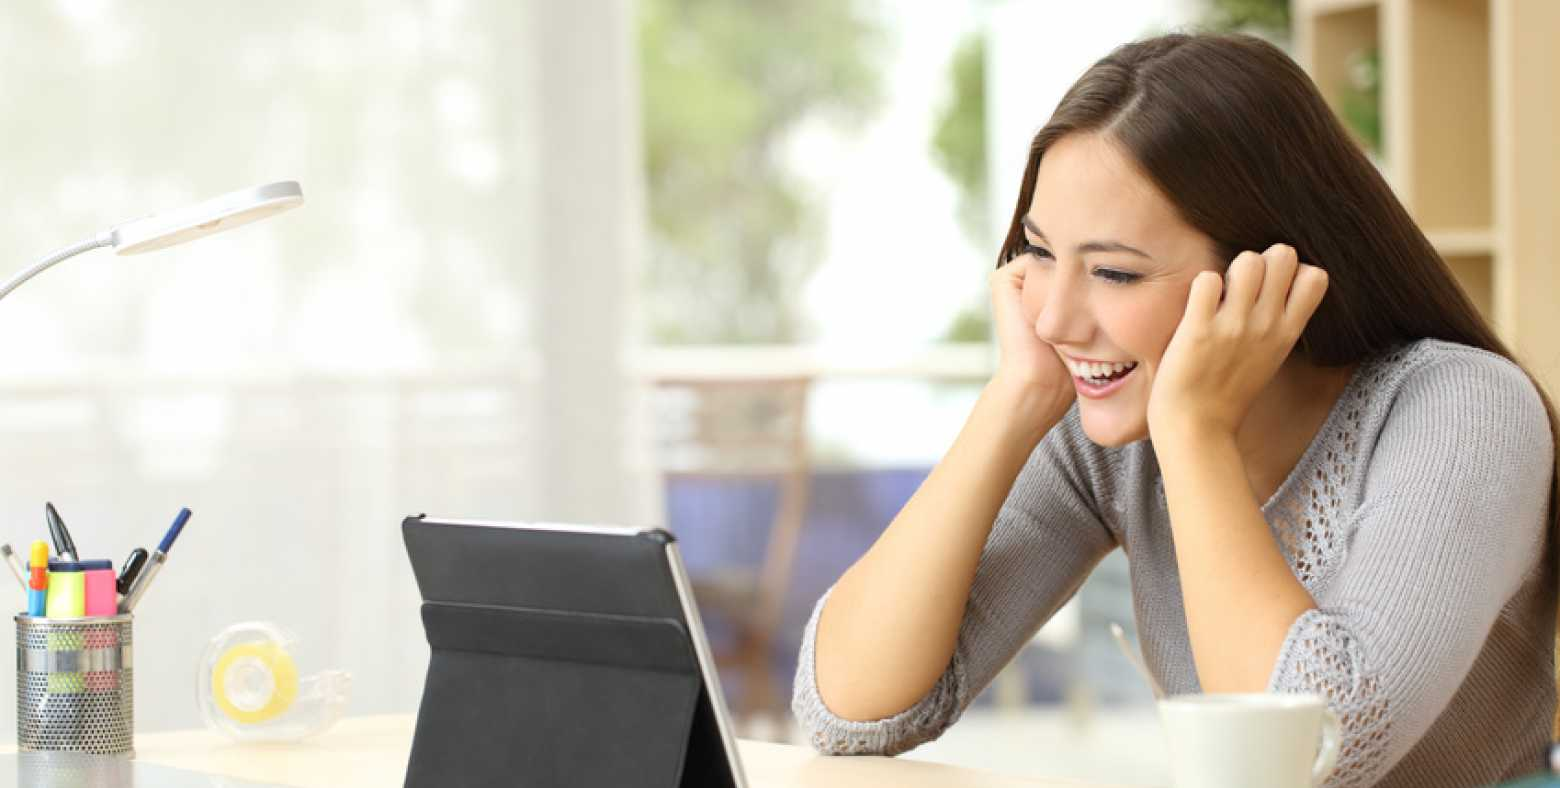 smiling woman on video chat